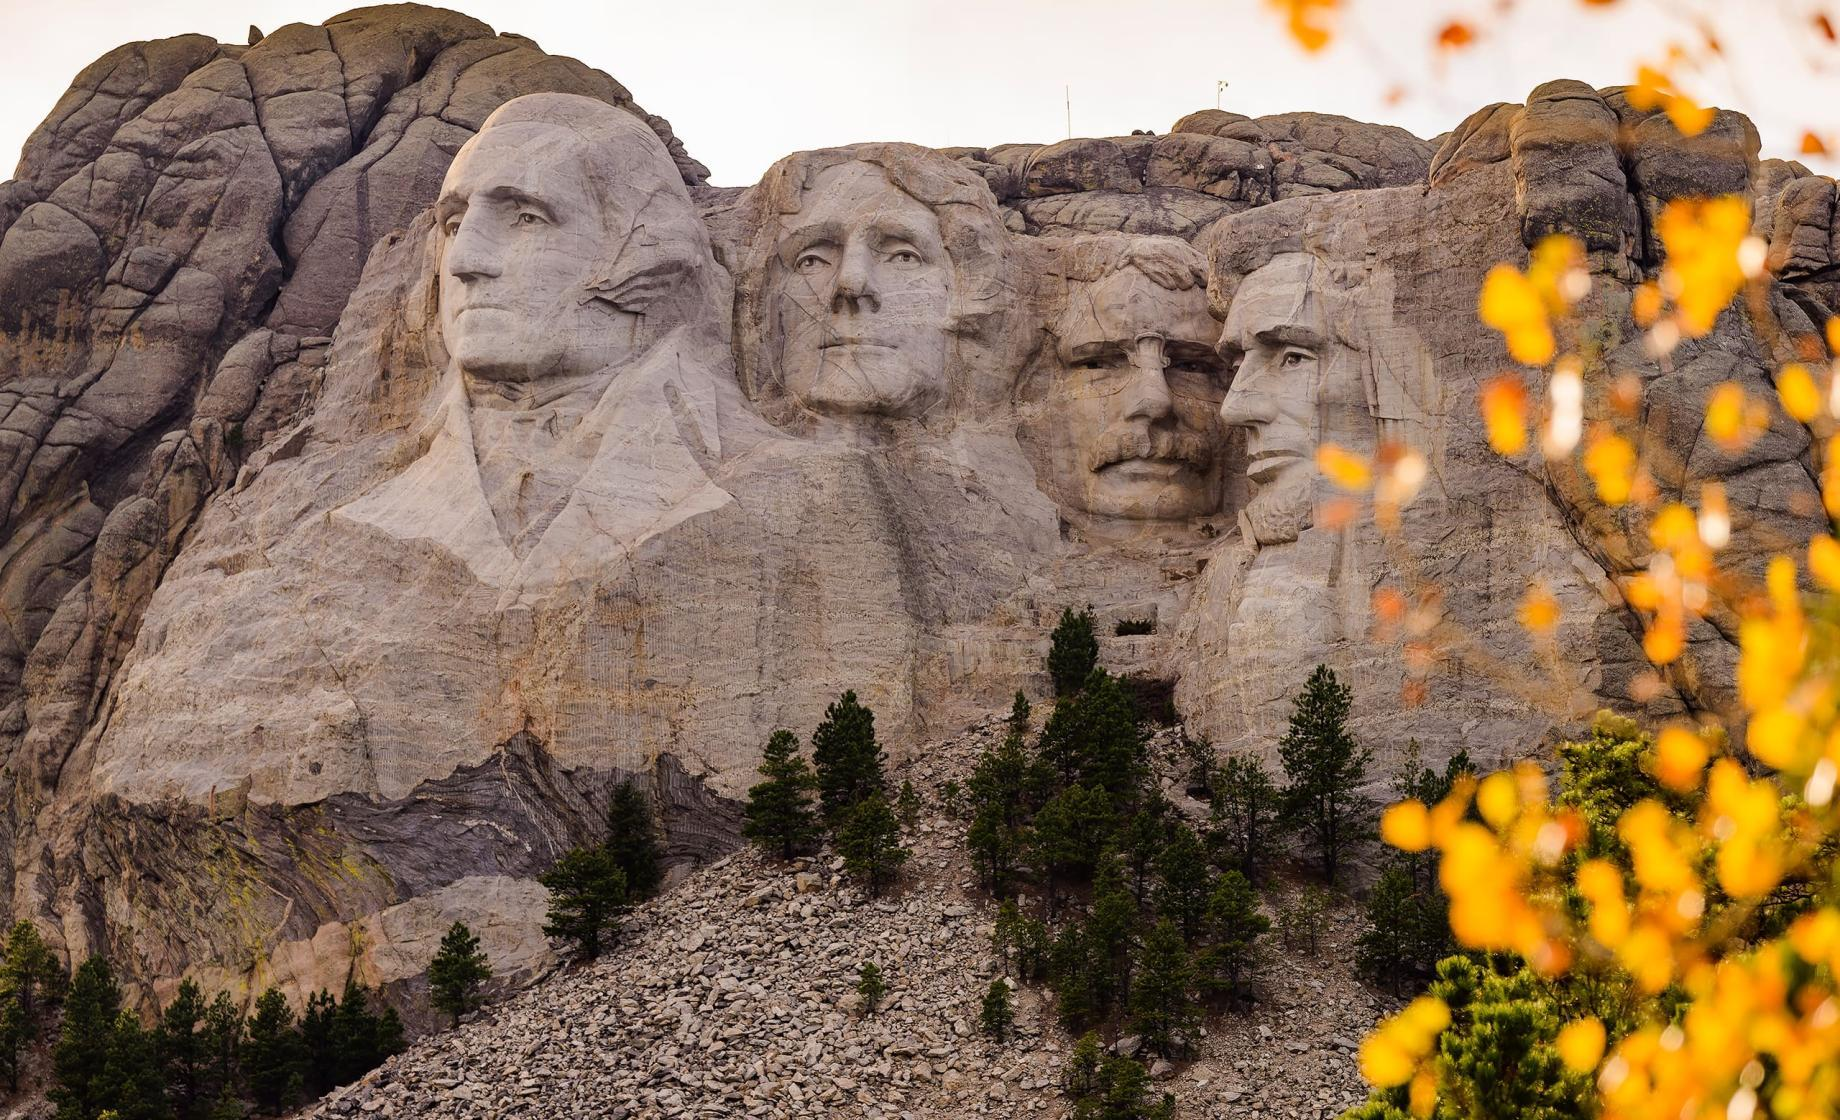 Mount Rushmore National Memorial Fall Colors 11-02-16